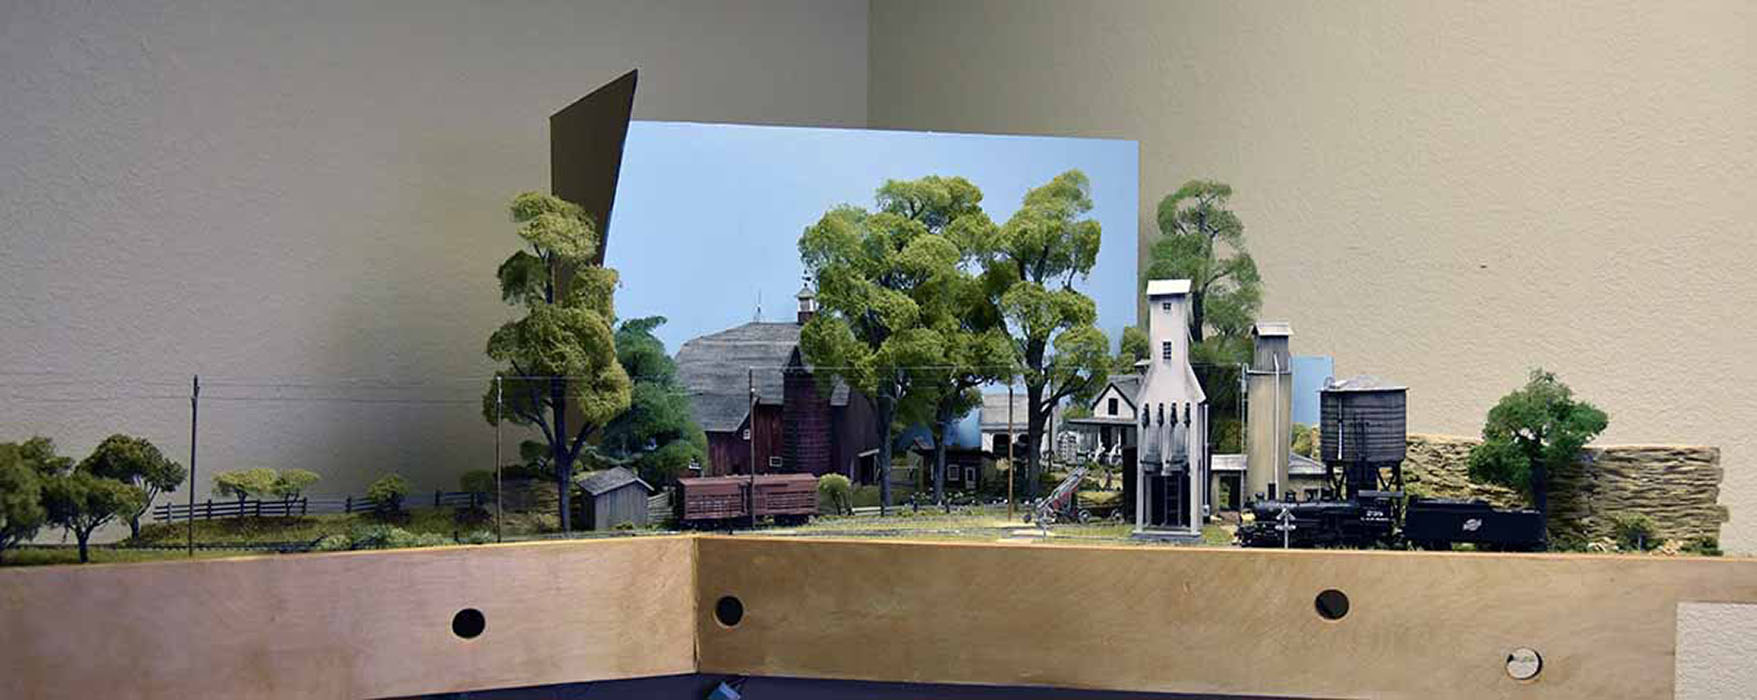 <em>Monfort Junction</em> Scenery Module by Roderic Thompson - Best in Show Award Award<br>2019 MWR & TLR Joint Convention.